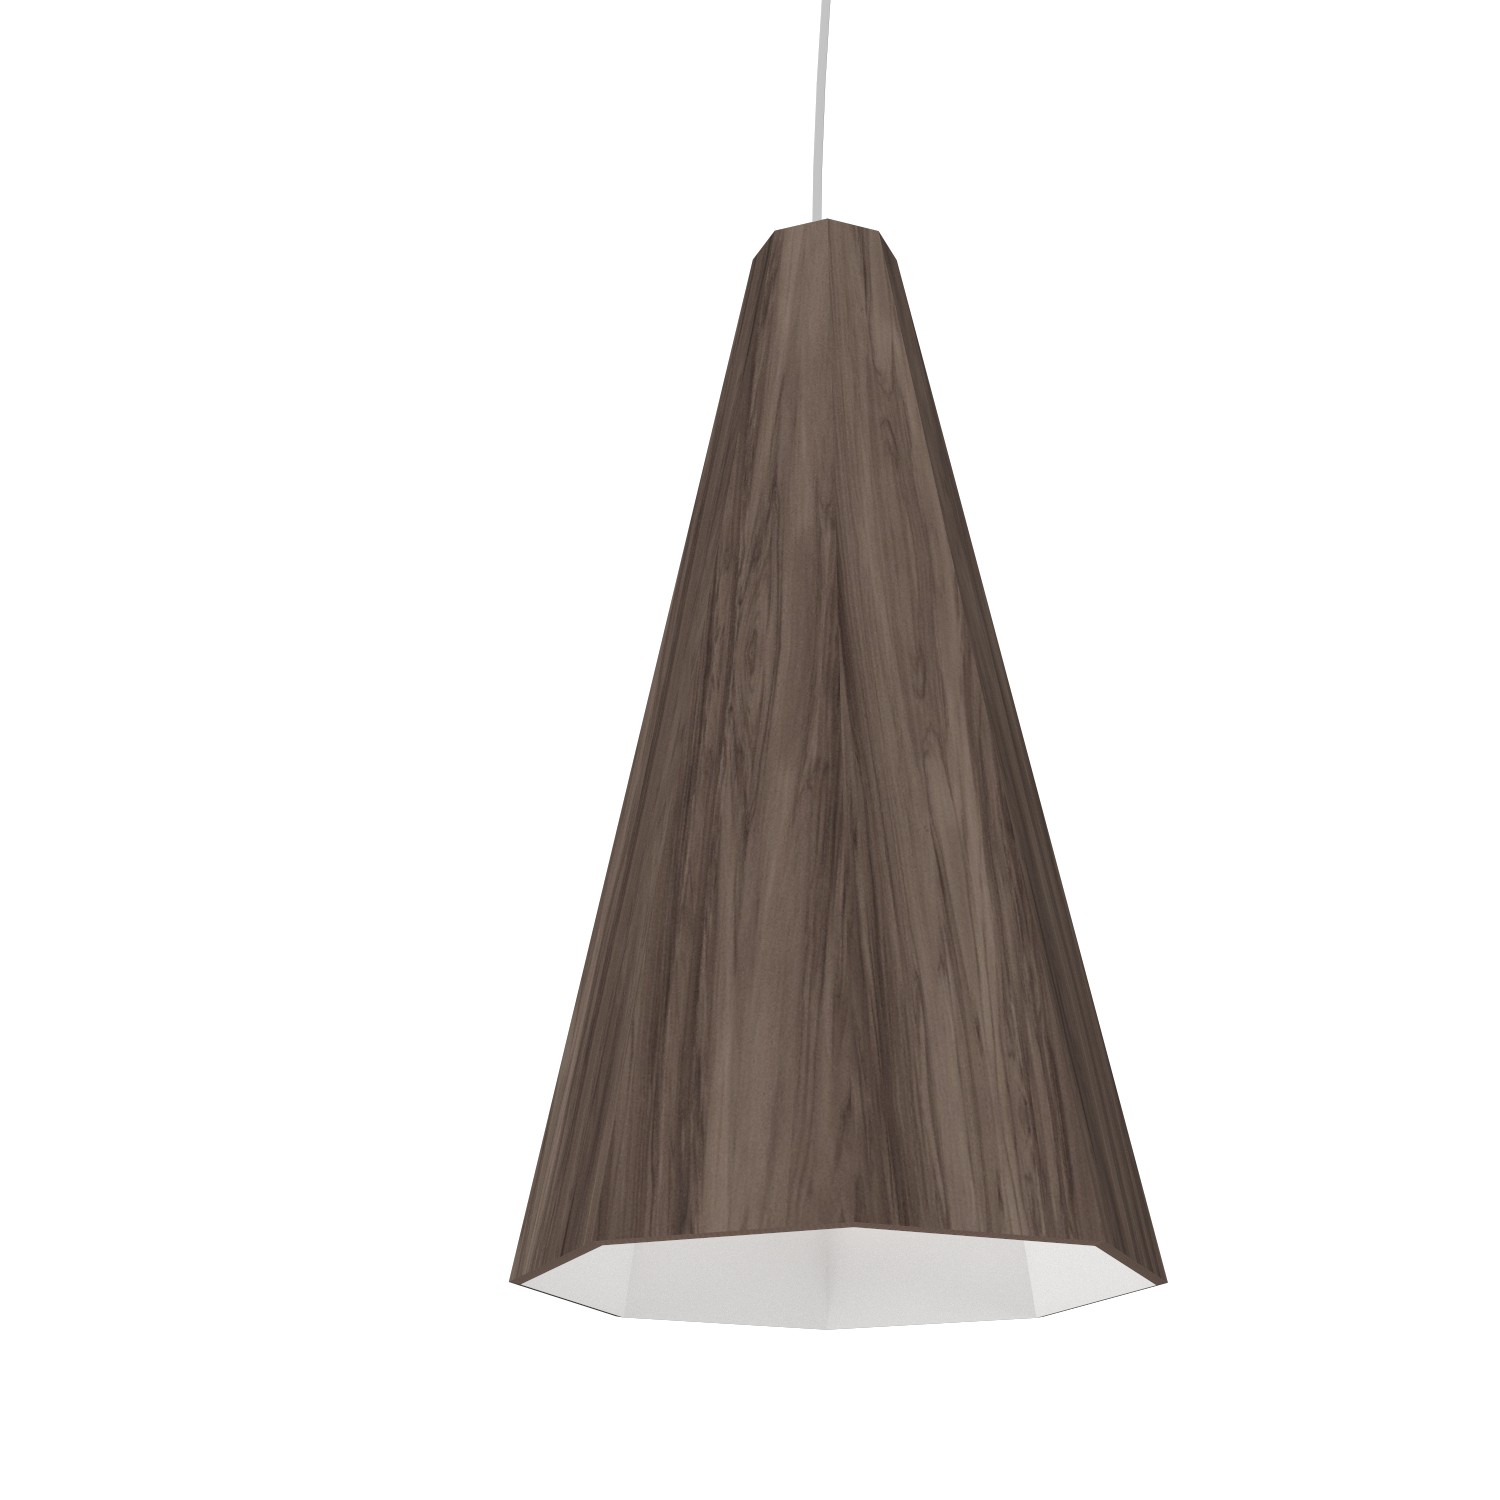 Pendant Lamp Accord Facetado 1231 - Facetada Line Accord Lighting | 18. American Walnut